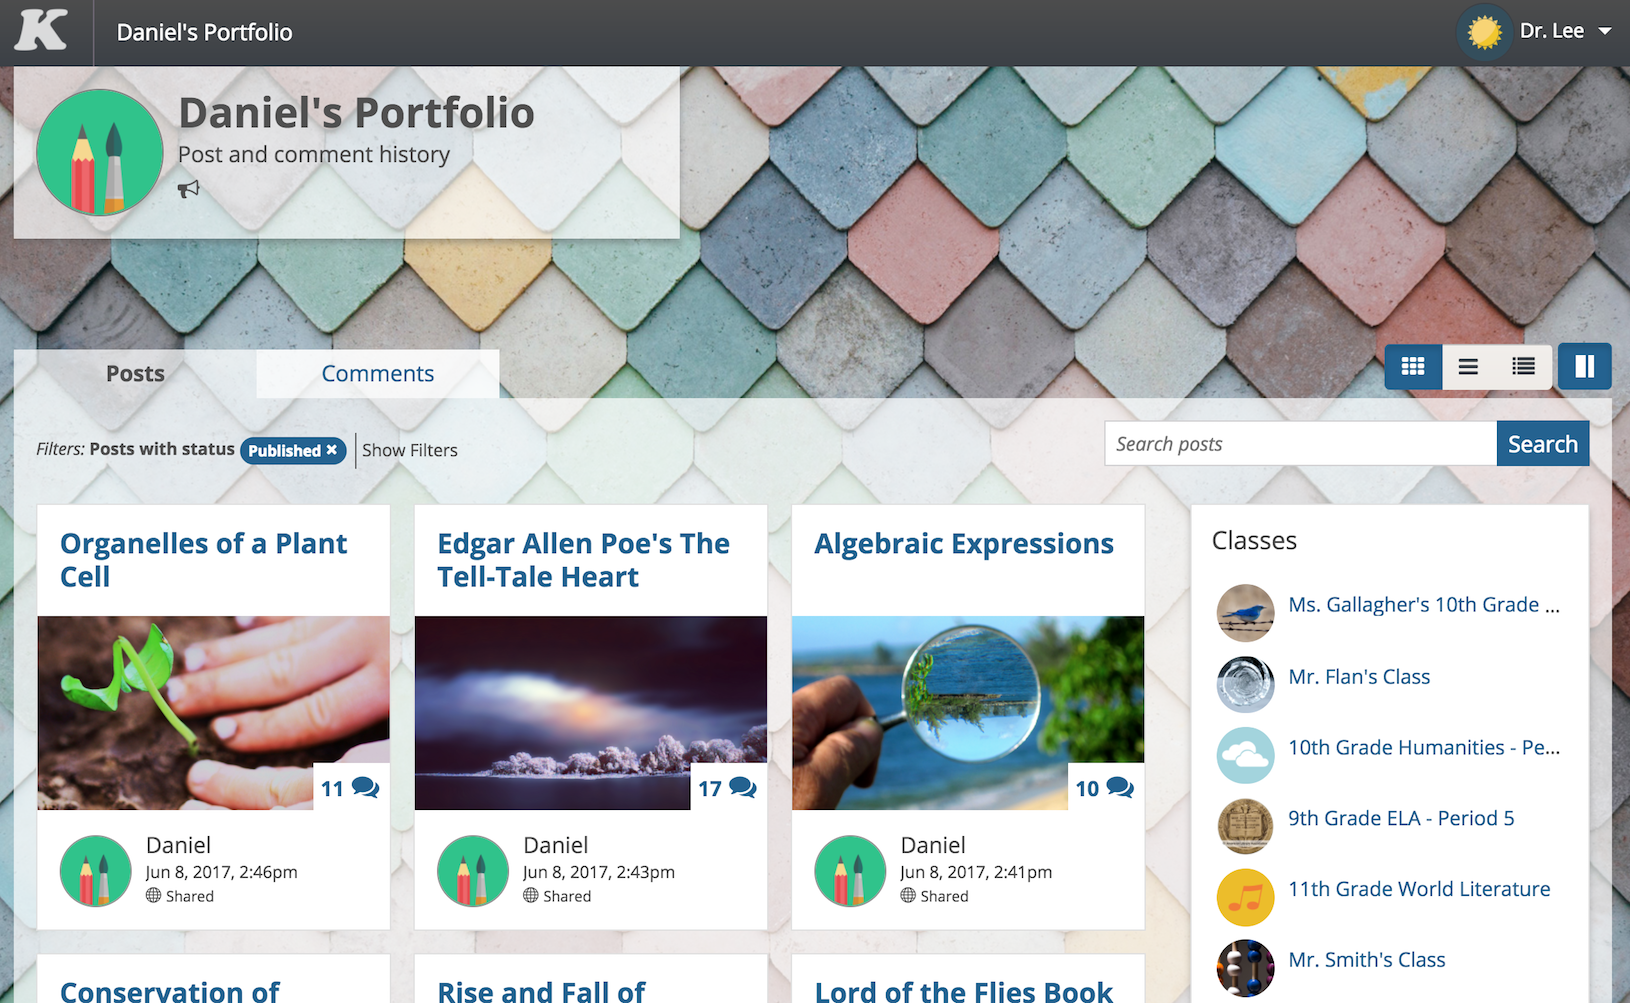 5 reasons to build student portfolios on Kidblog